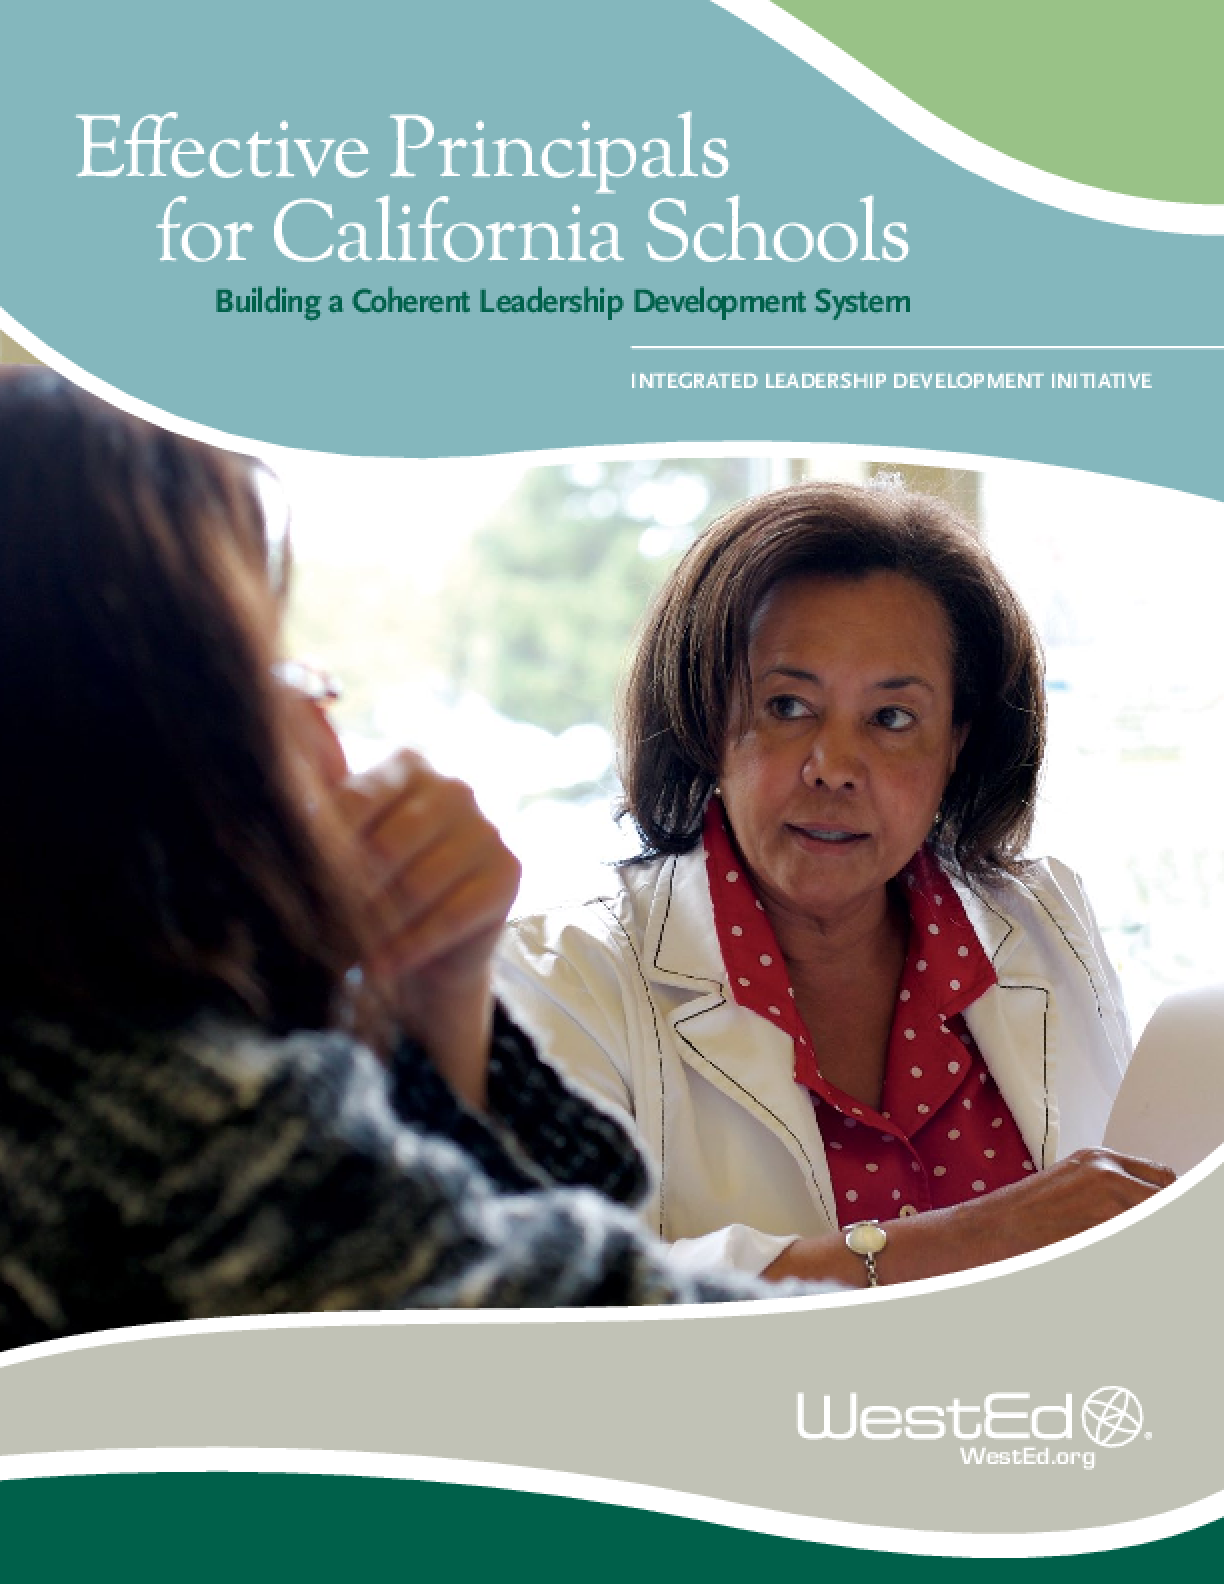 Effective Principals for California Schools: Building a Coherent Leadership Development System